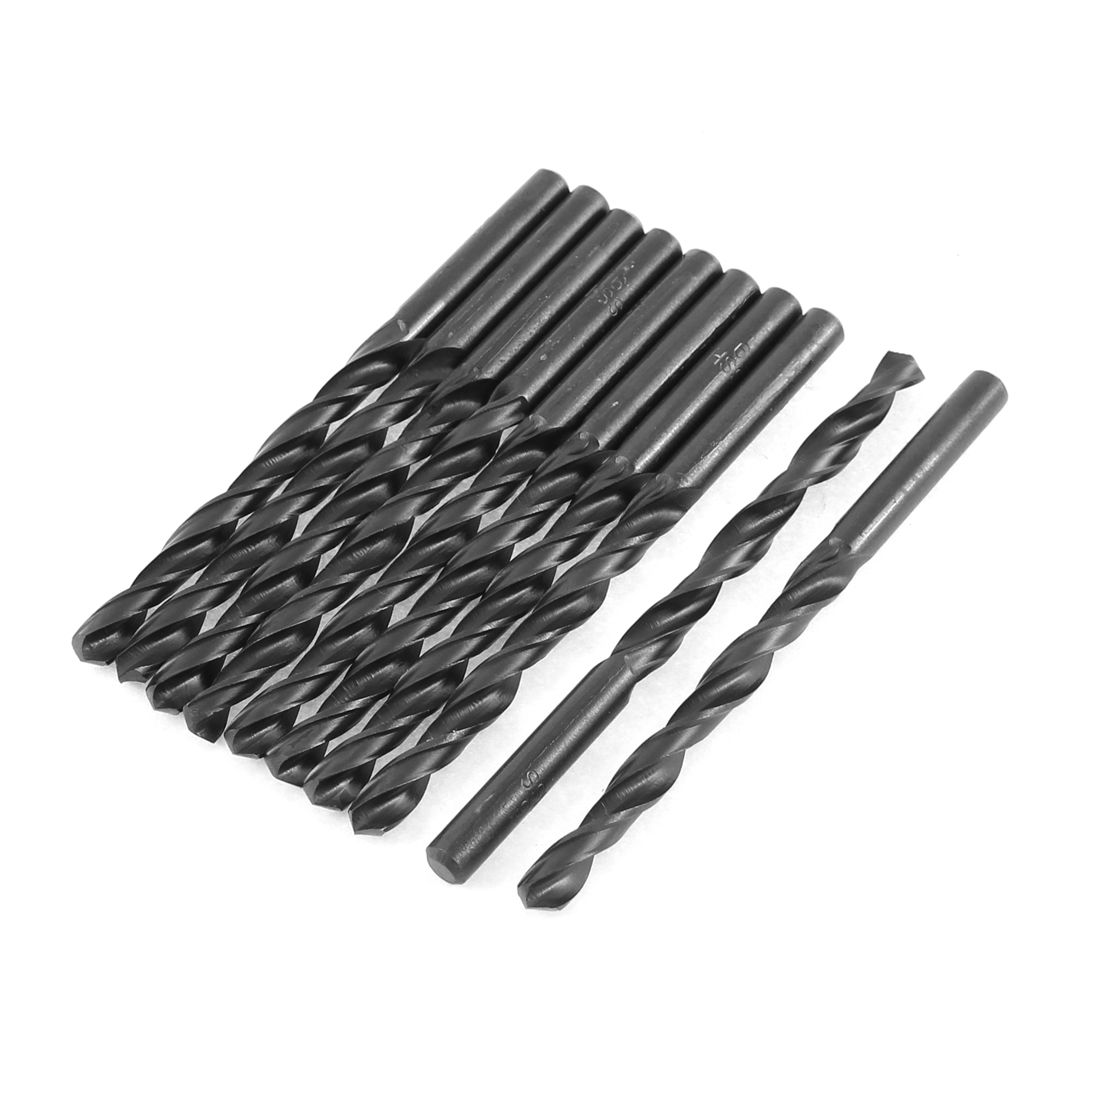 6mm Cutting Dia 90mm Length HSS Straight Shank Twist Drill Bit Black 10pcs